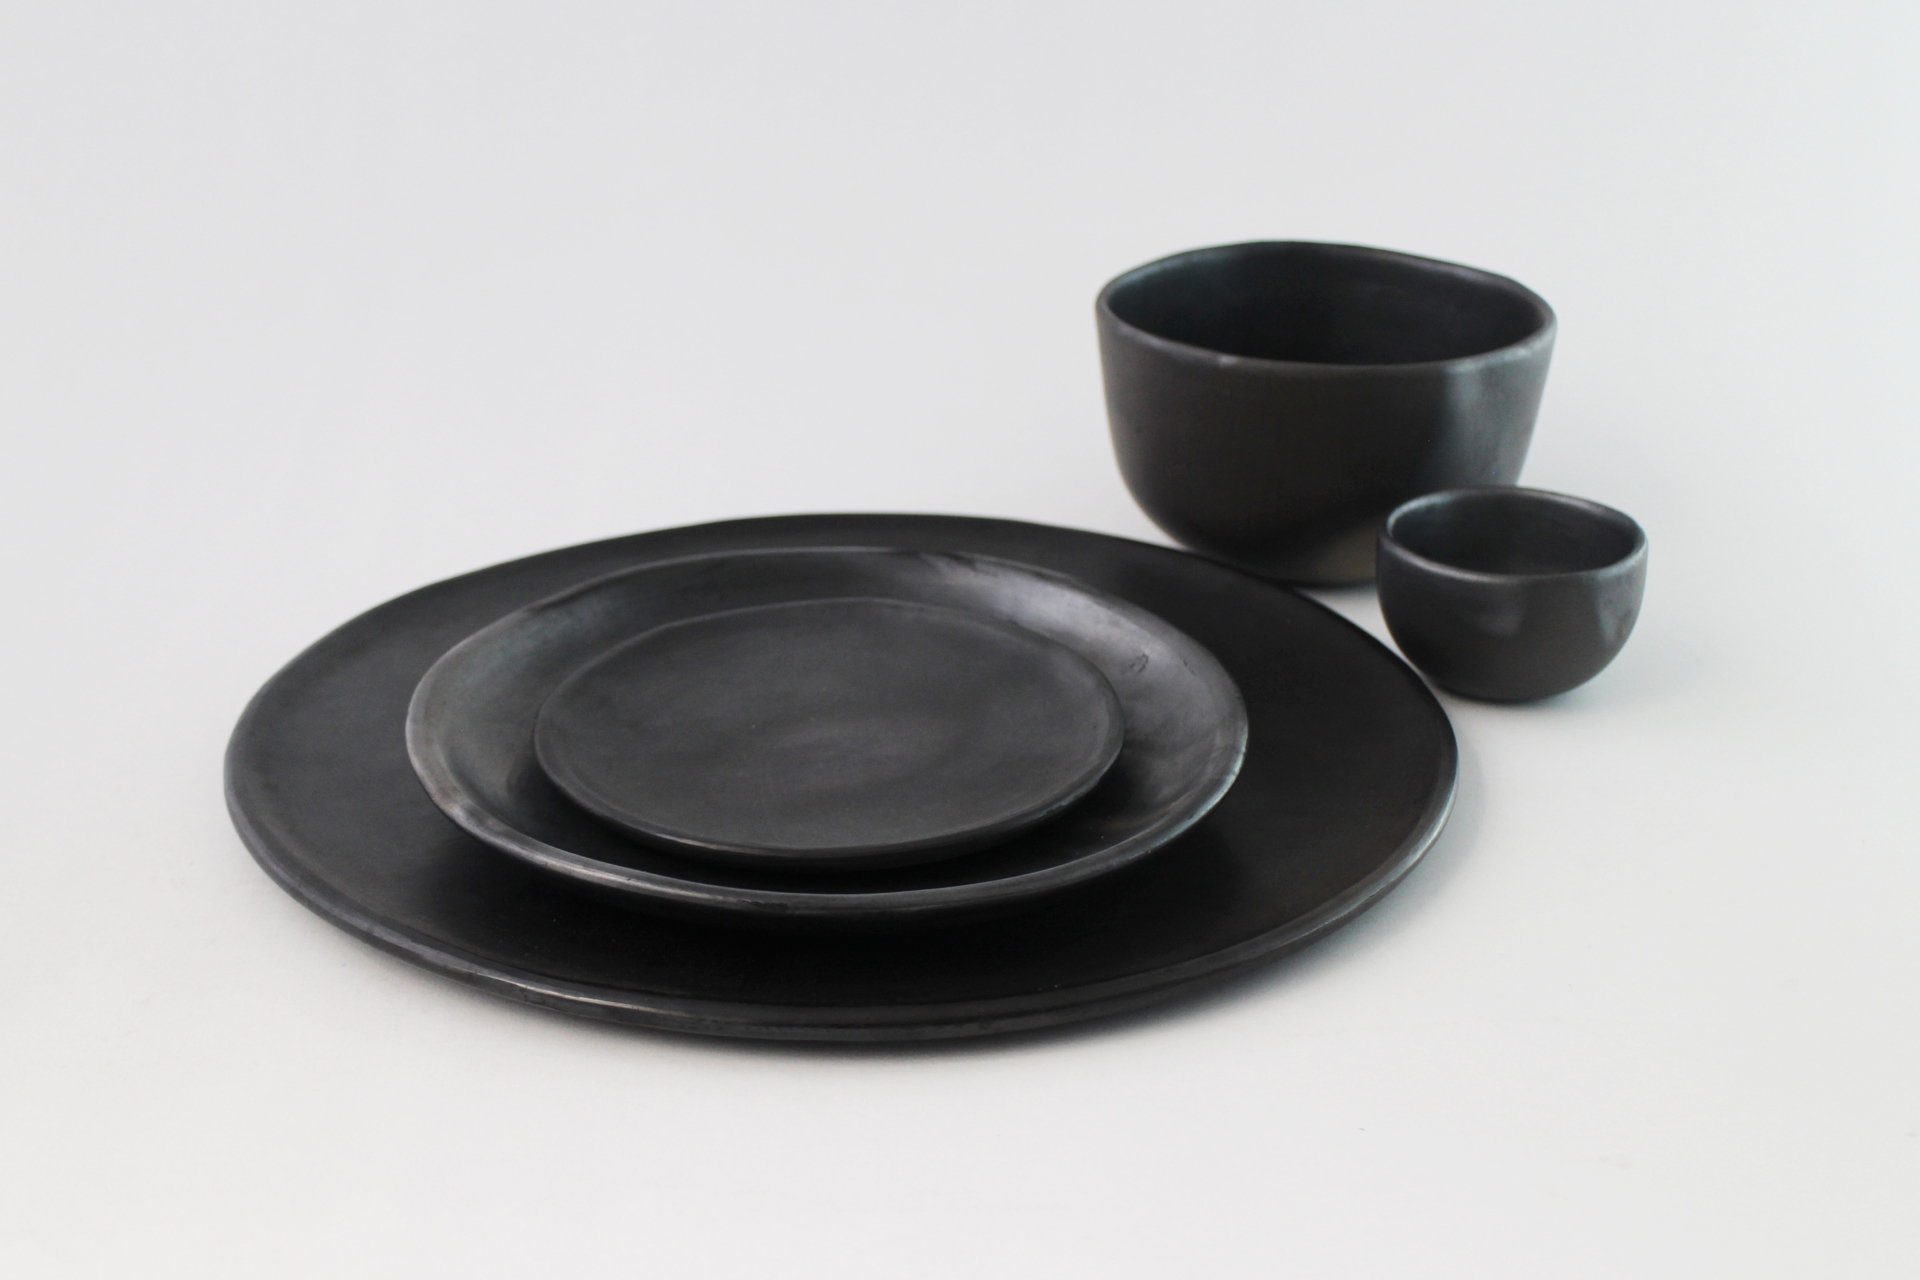 La Negra Dinner Plate by Colectivo 1050